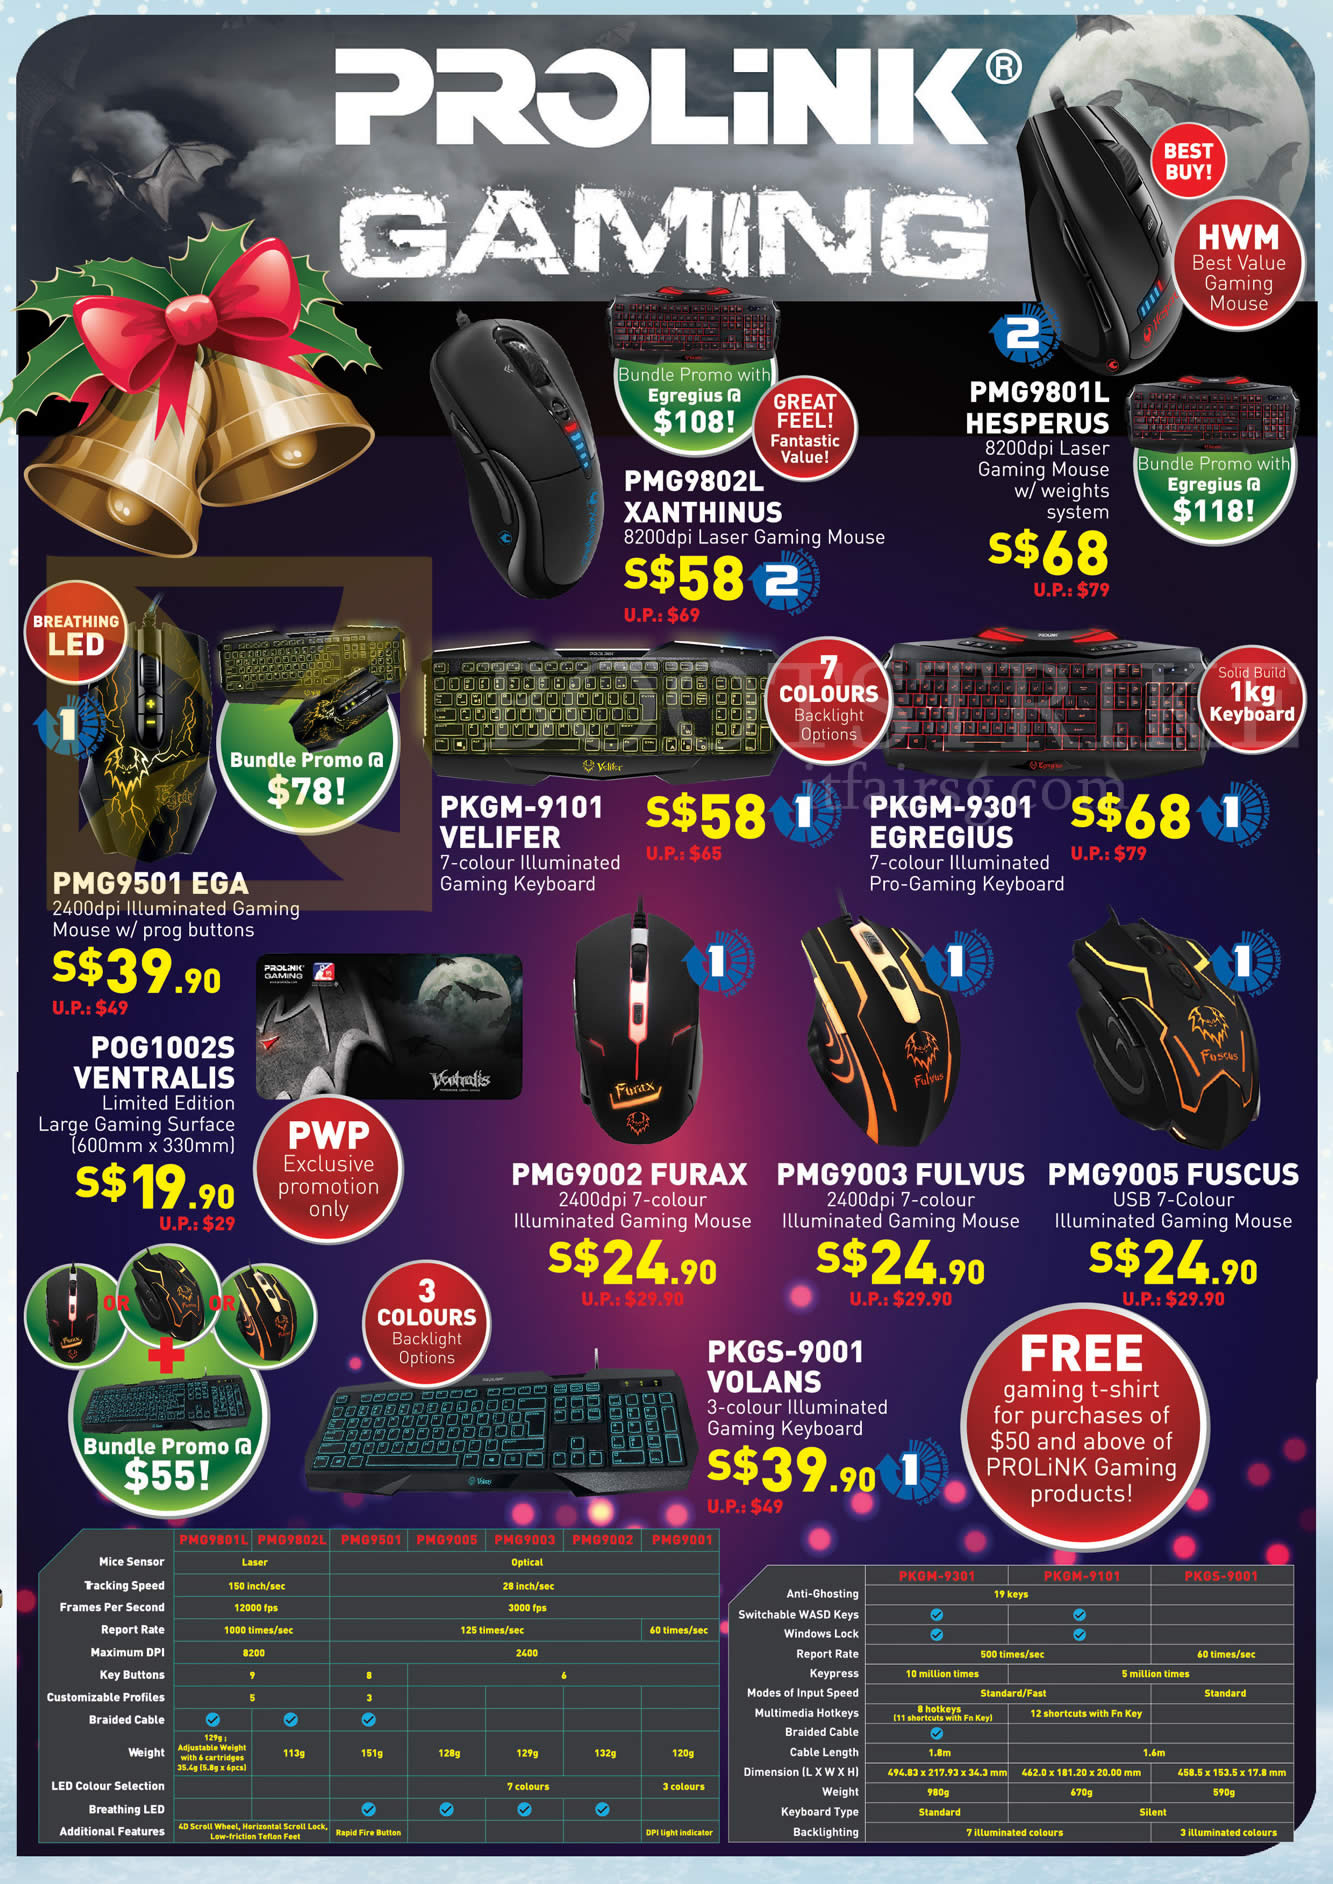 SITEX 2015 price list image brochure of Prolink Gaming Mouse, Keyboards, PMG9802L, 9801L, 9501EGA, PKGM-9101 Velifer, 9301 Egregius, POG1002S Ventralis, PMG9002 Furax, 9003 FULVUS